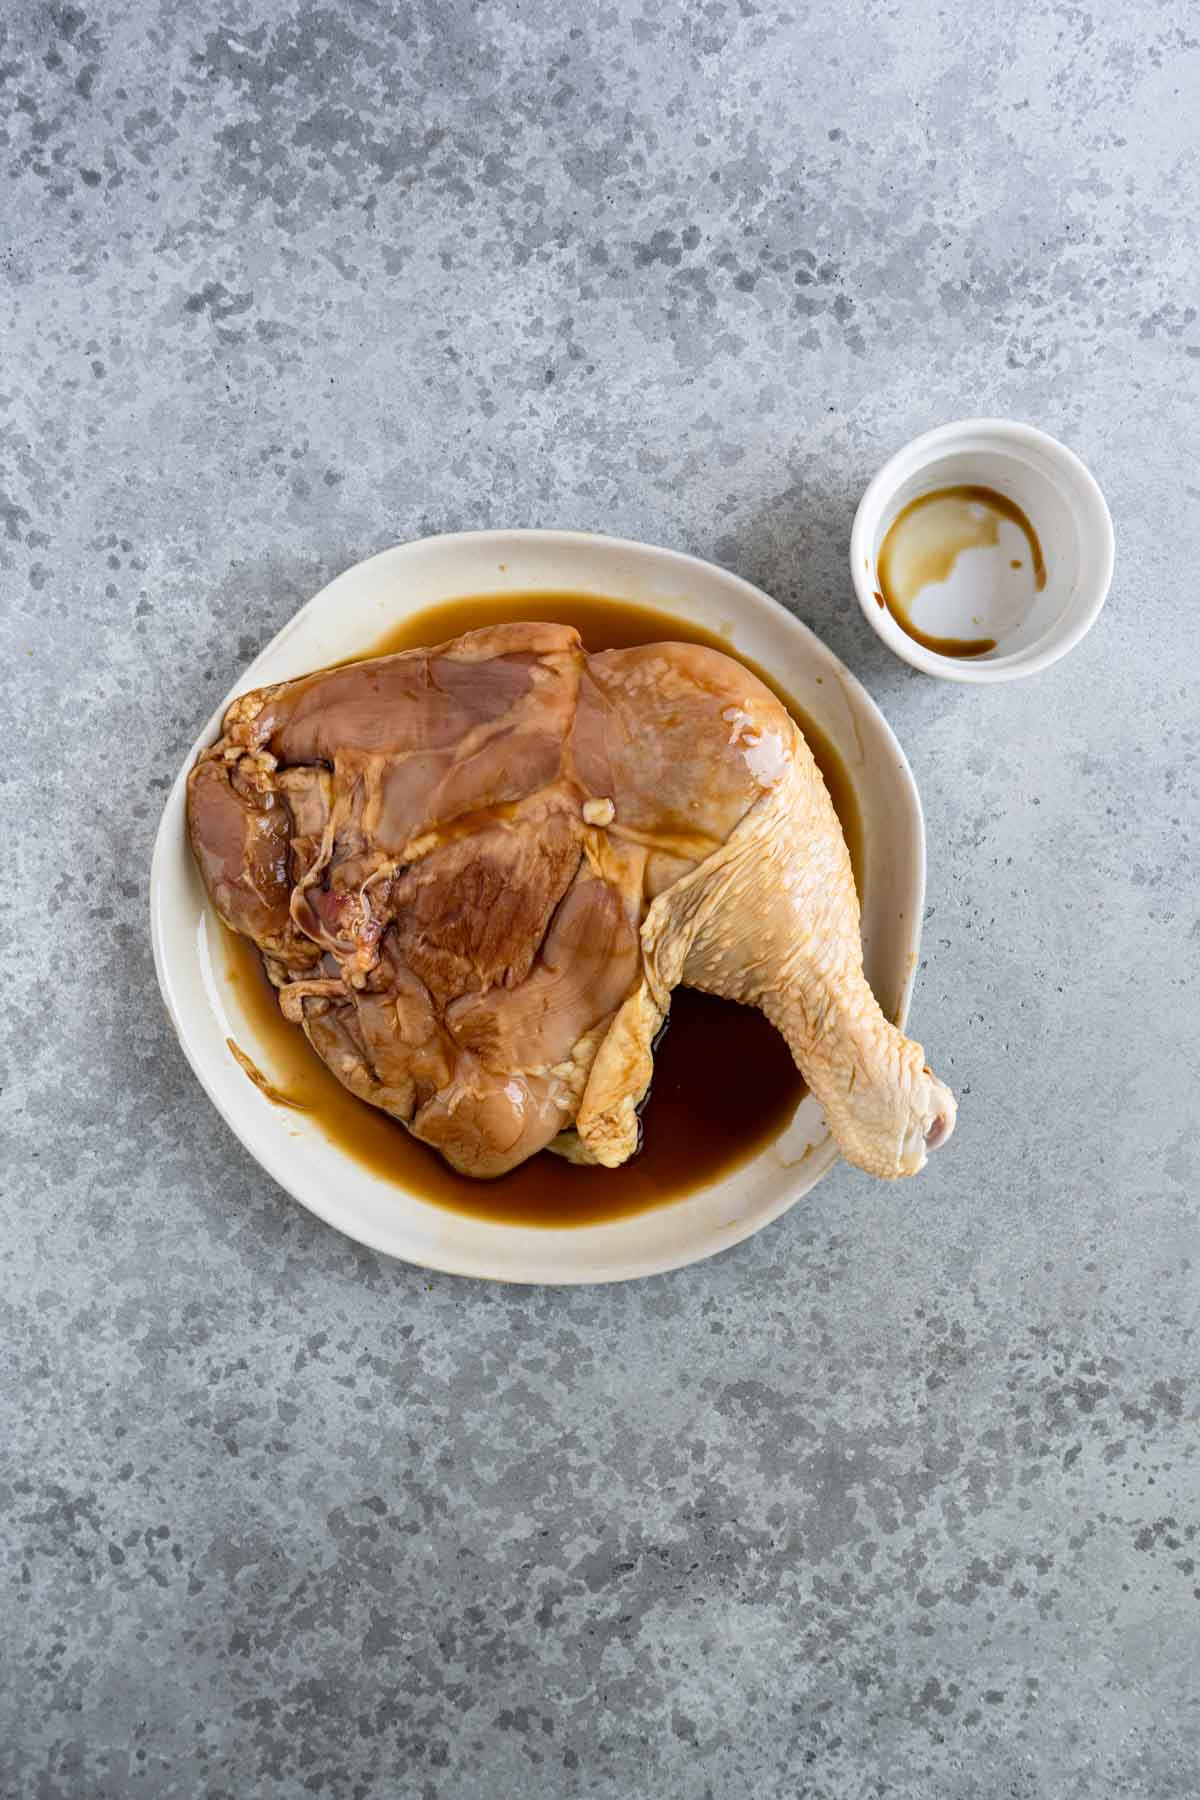 Whole chicken leg marinated in soy sauce.